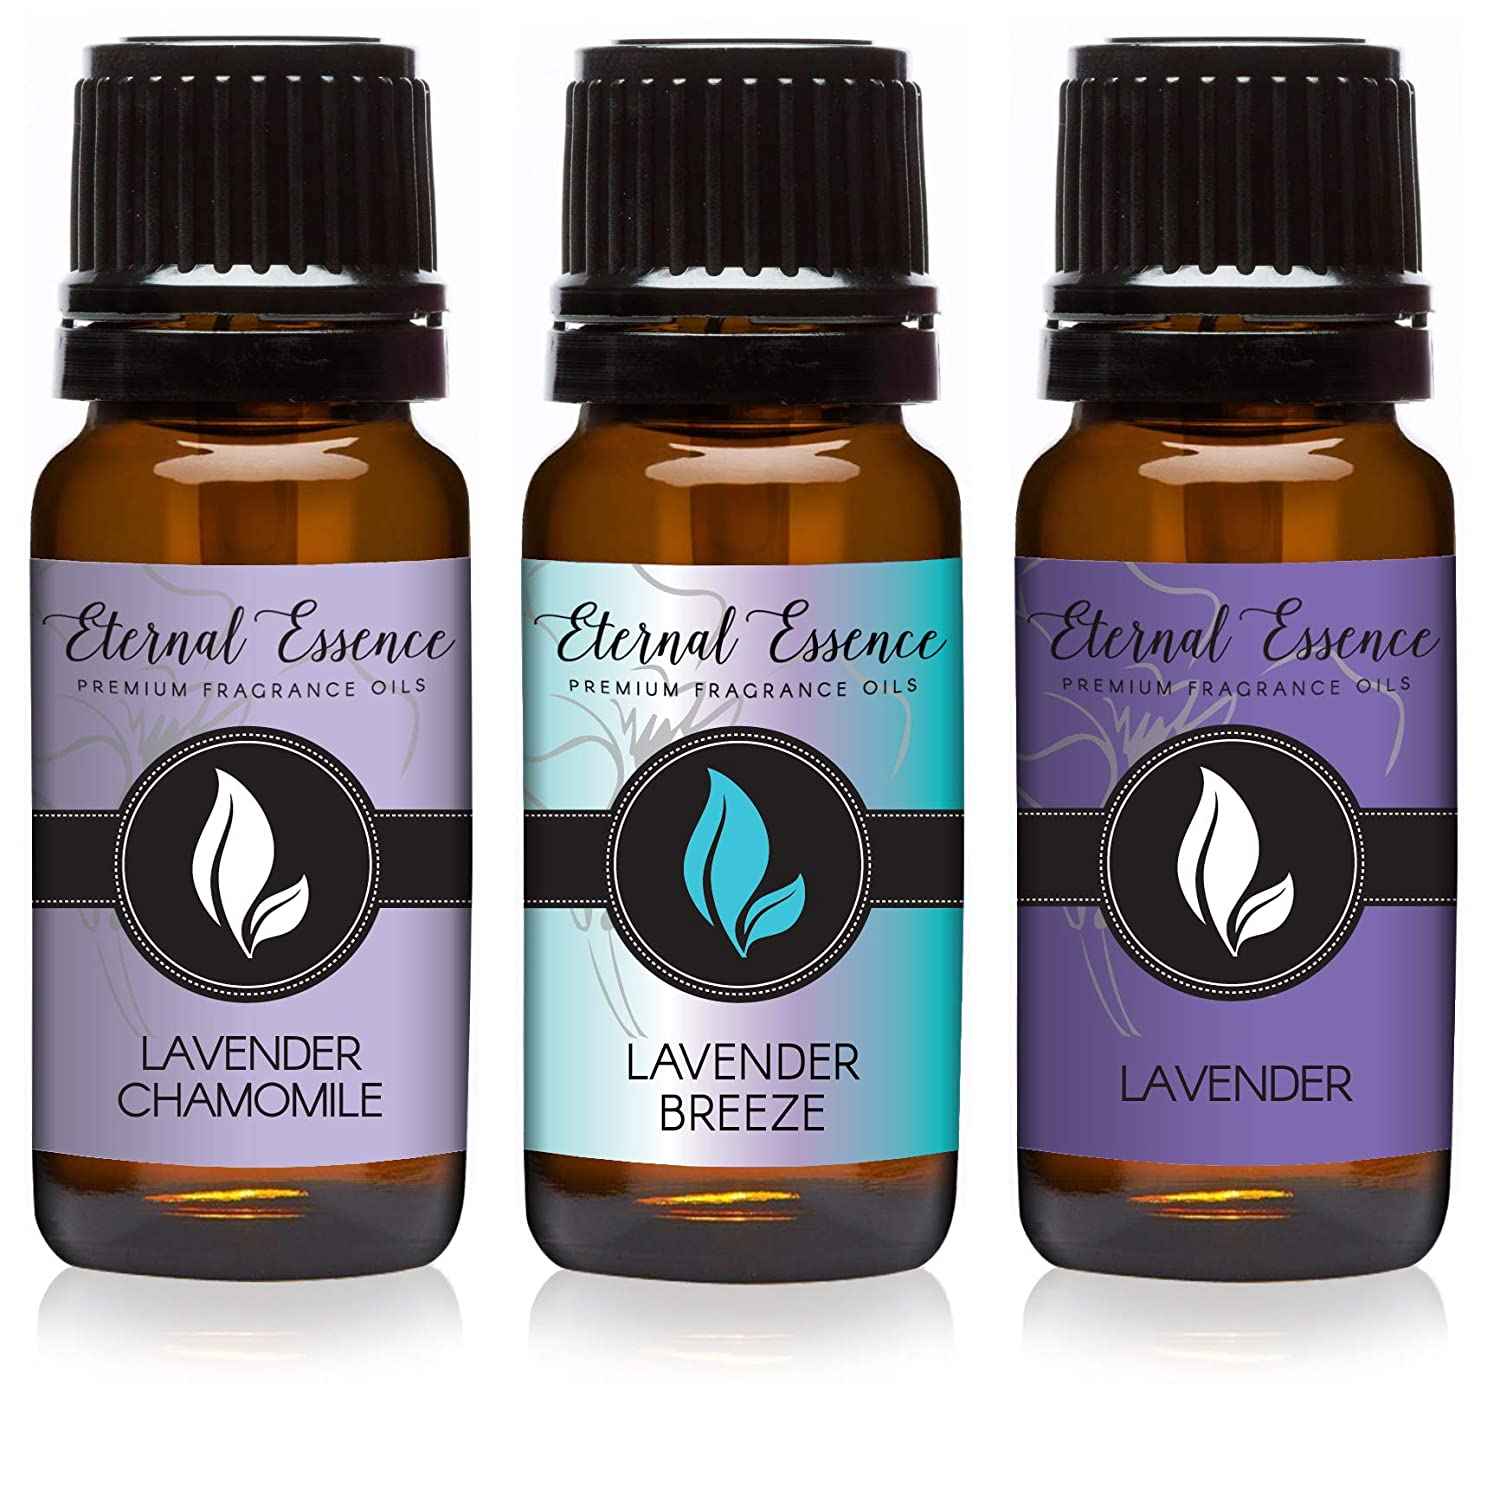 Trio (3) - Lavender Chamomile, Lavender Breeze & Lavender - Premium Fragrance Oil Trio - 10ML